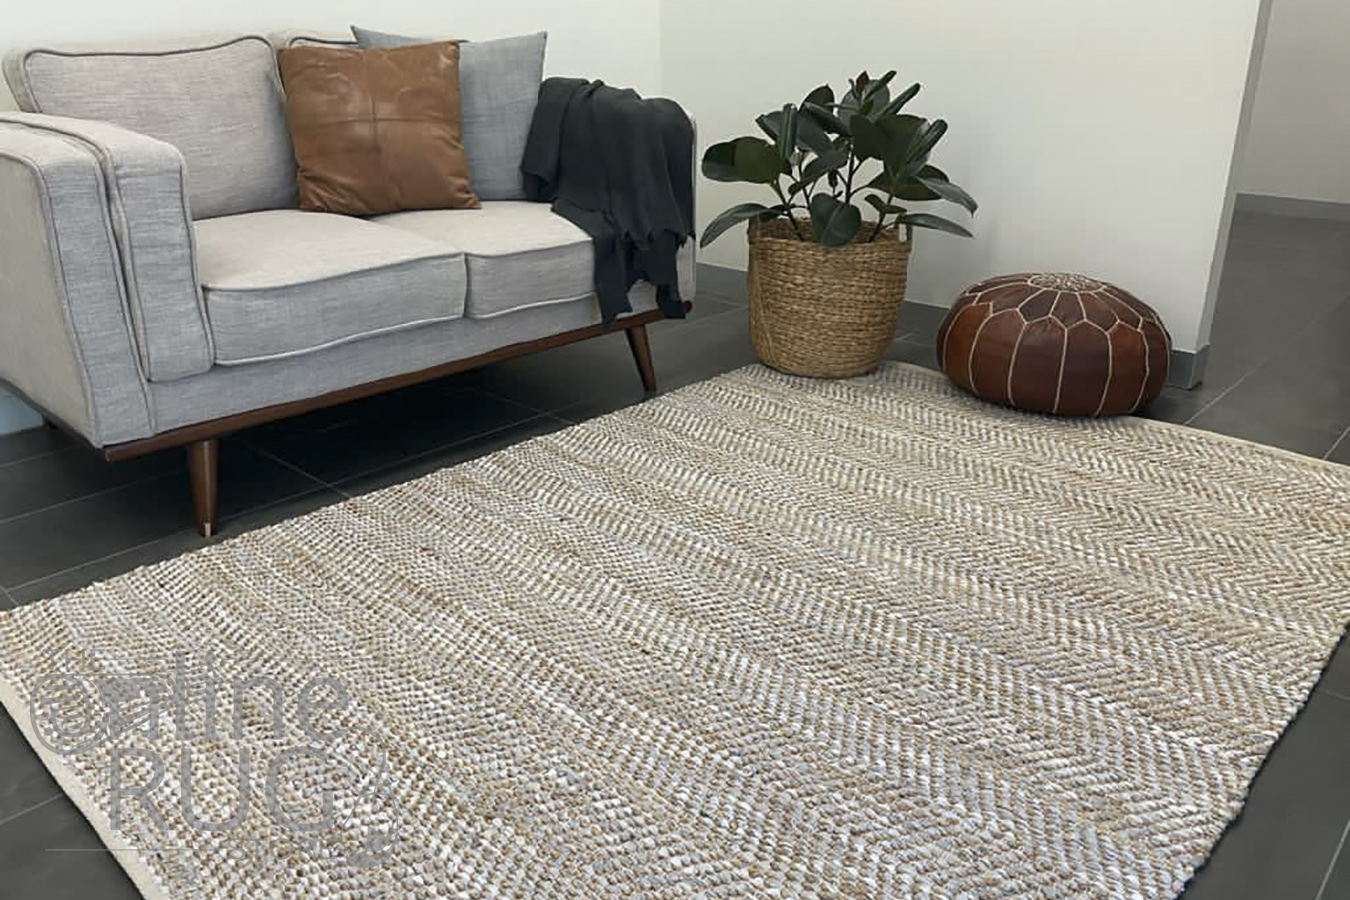 Rustic Natural White Hand Woven Rug